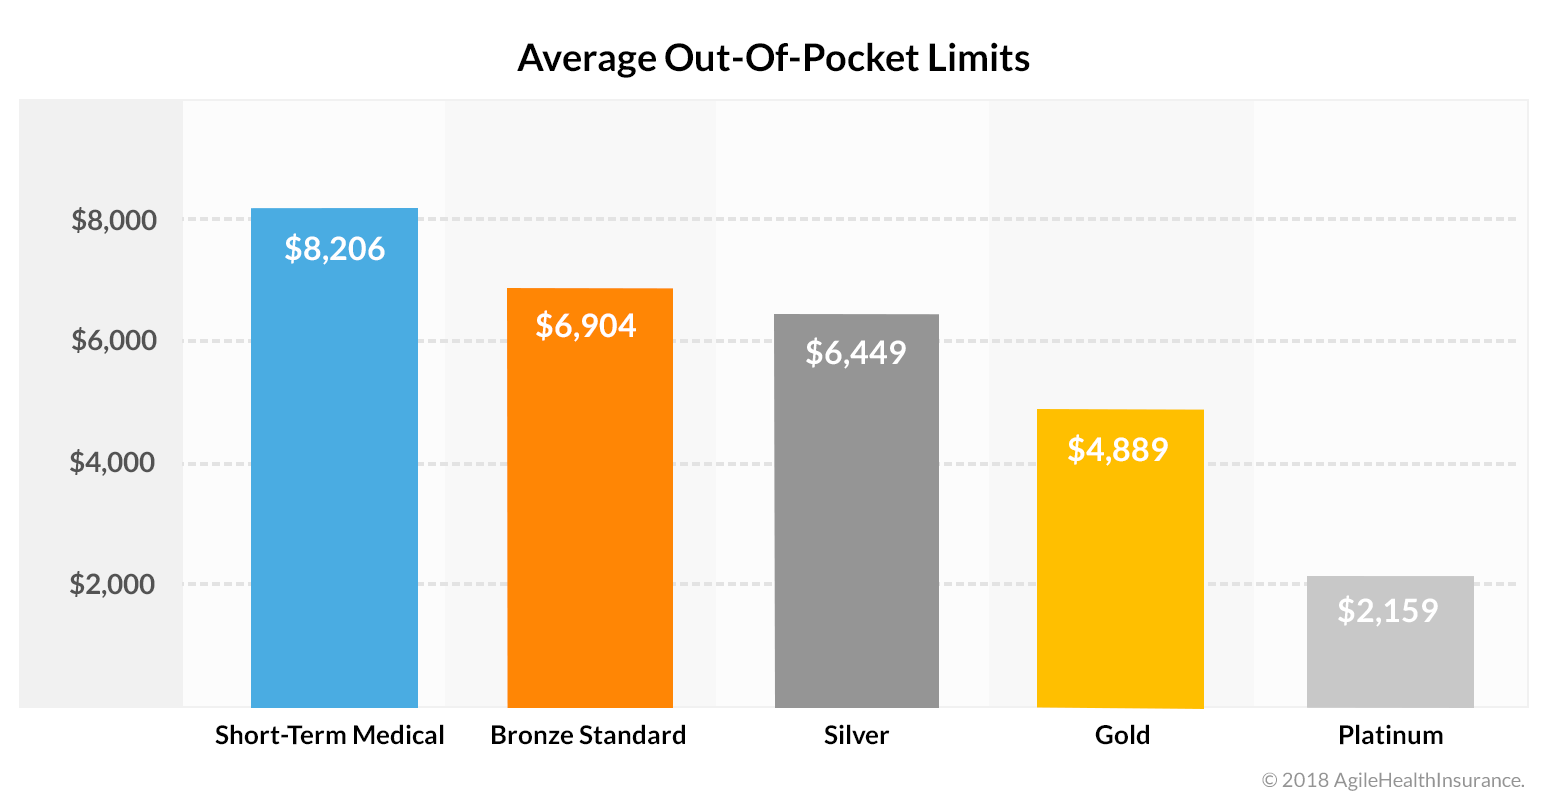 Average Out-Of-Pocket Limits